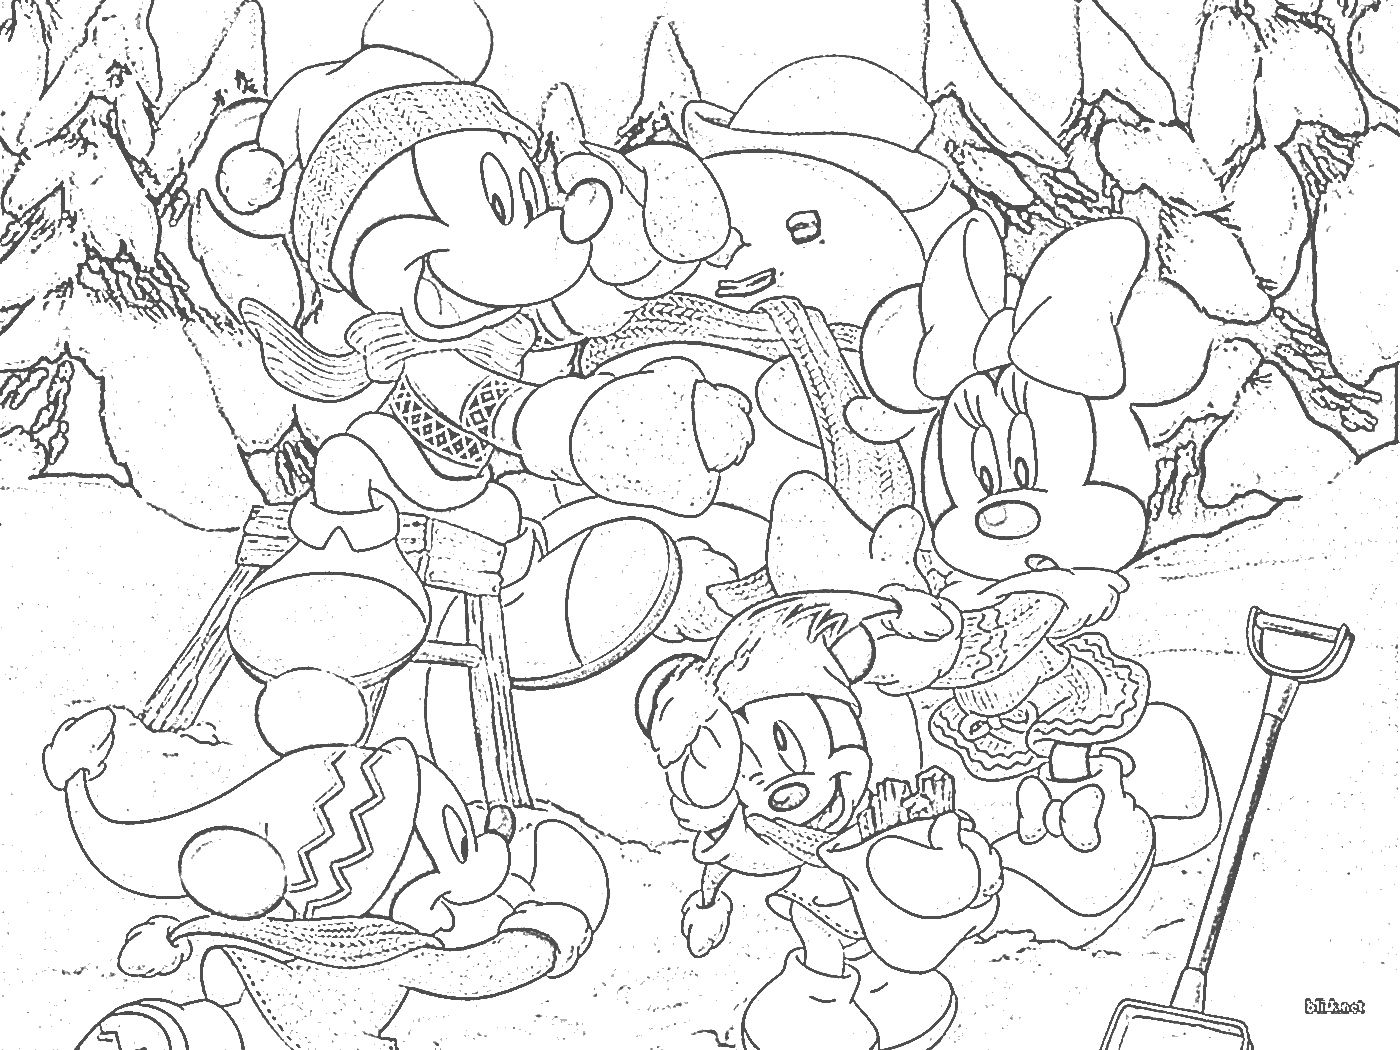 Coloring pages for christmas - Disney Christmas Disney Christmas Tree Coloring Pages